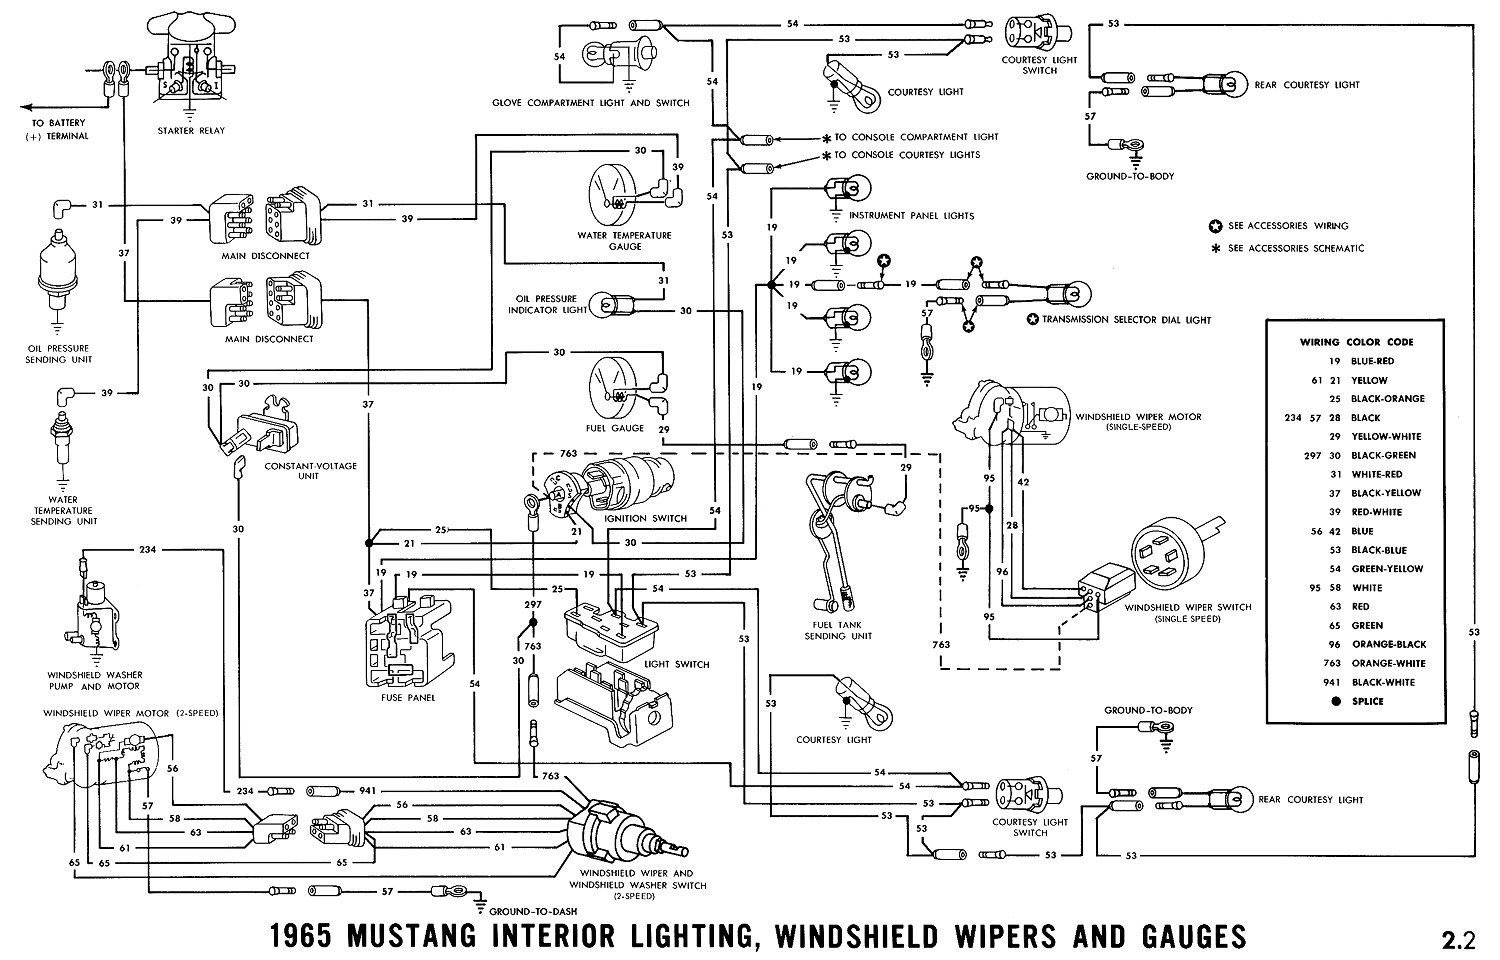 1970 mustang wiring diagram pdf search for wiring diagrams u2022 rh stephenpoon co 1970 Mach 1 Wiring Diagram 1968 Mustang Dash Wiring Diagram